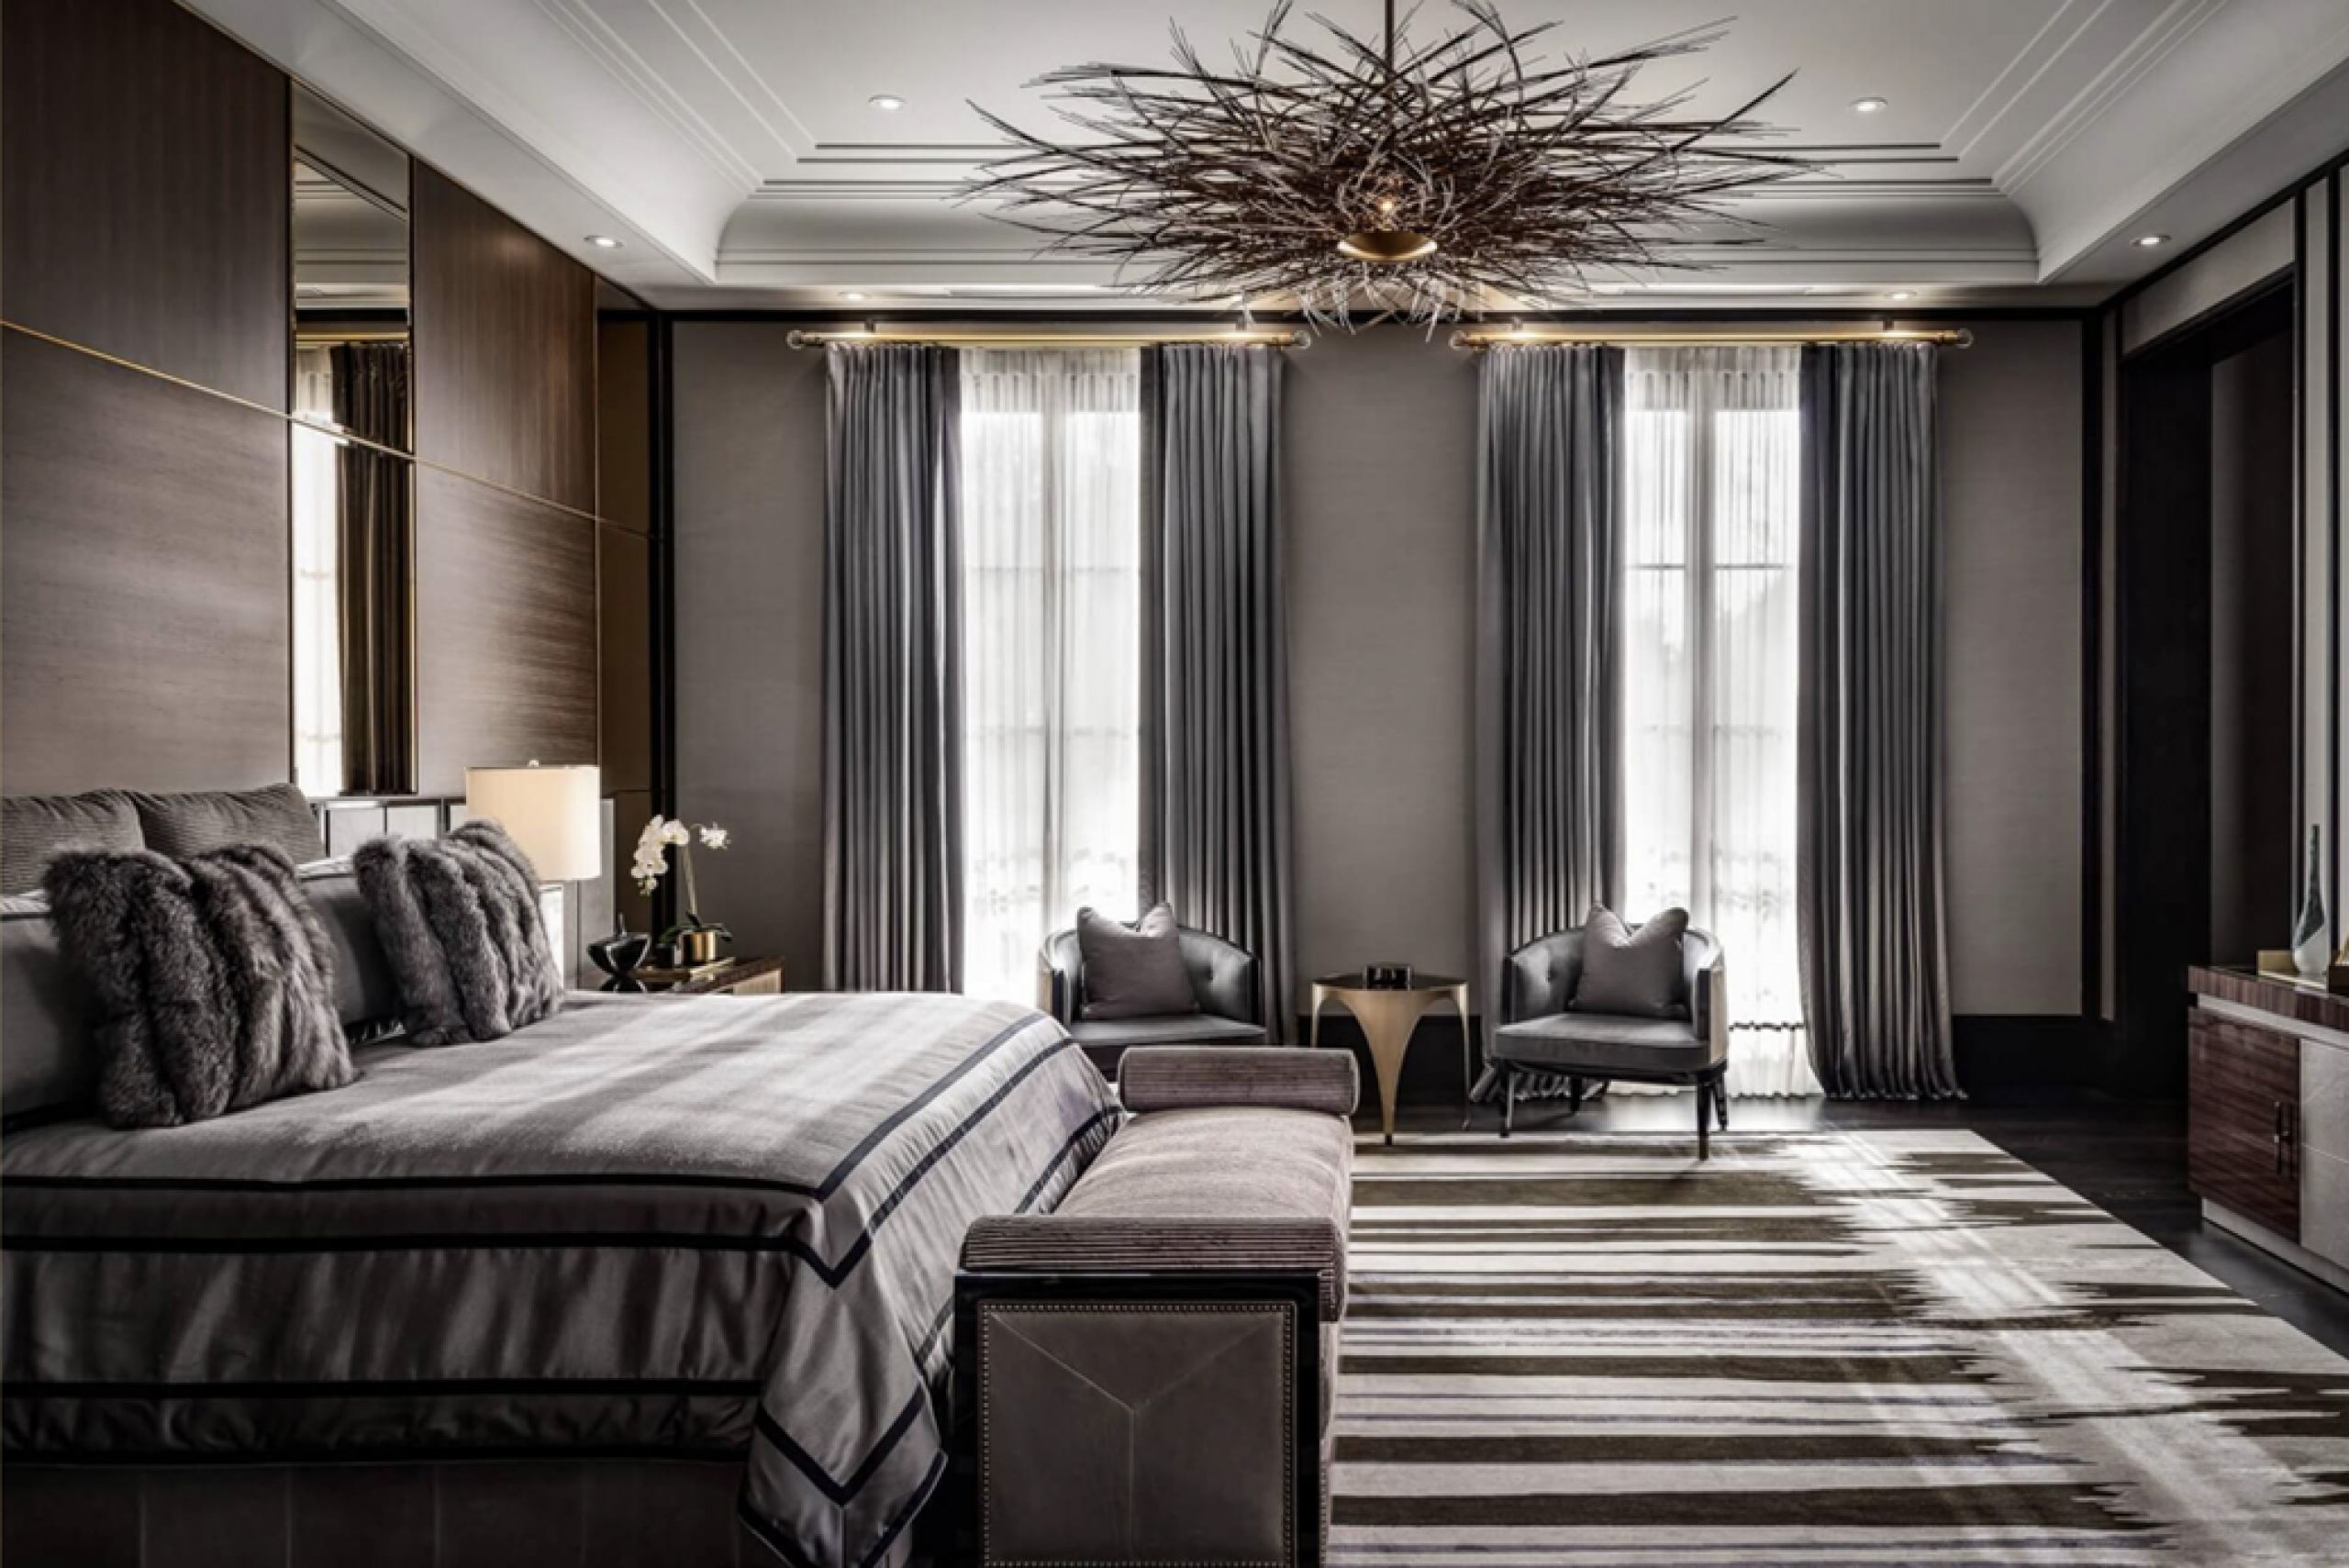 luxury bedroom drake manor marble interior design Rafauli